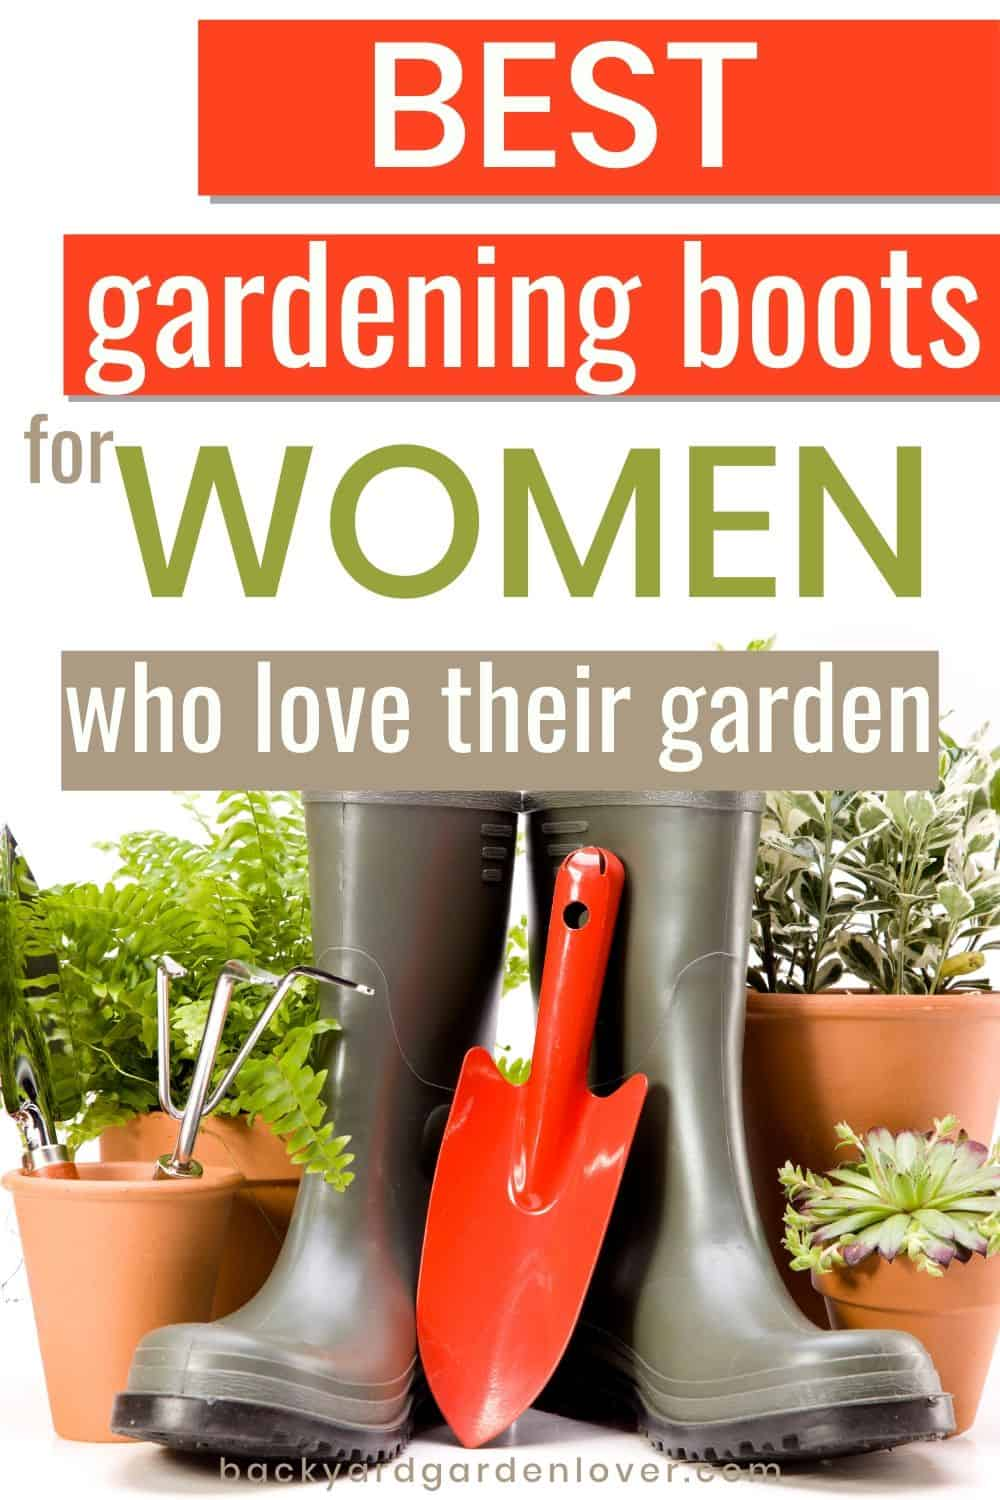 Best gardening muck boots for women who love their garden